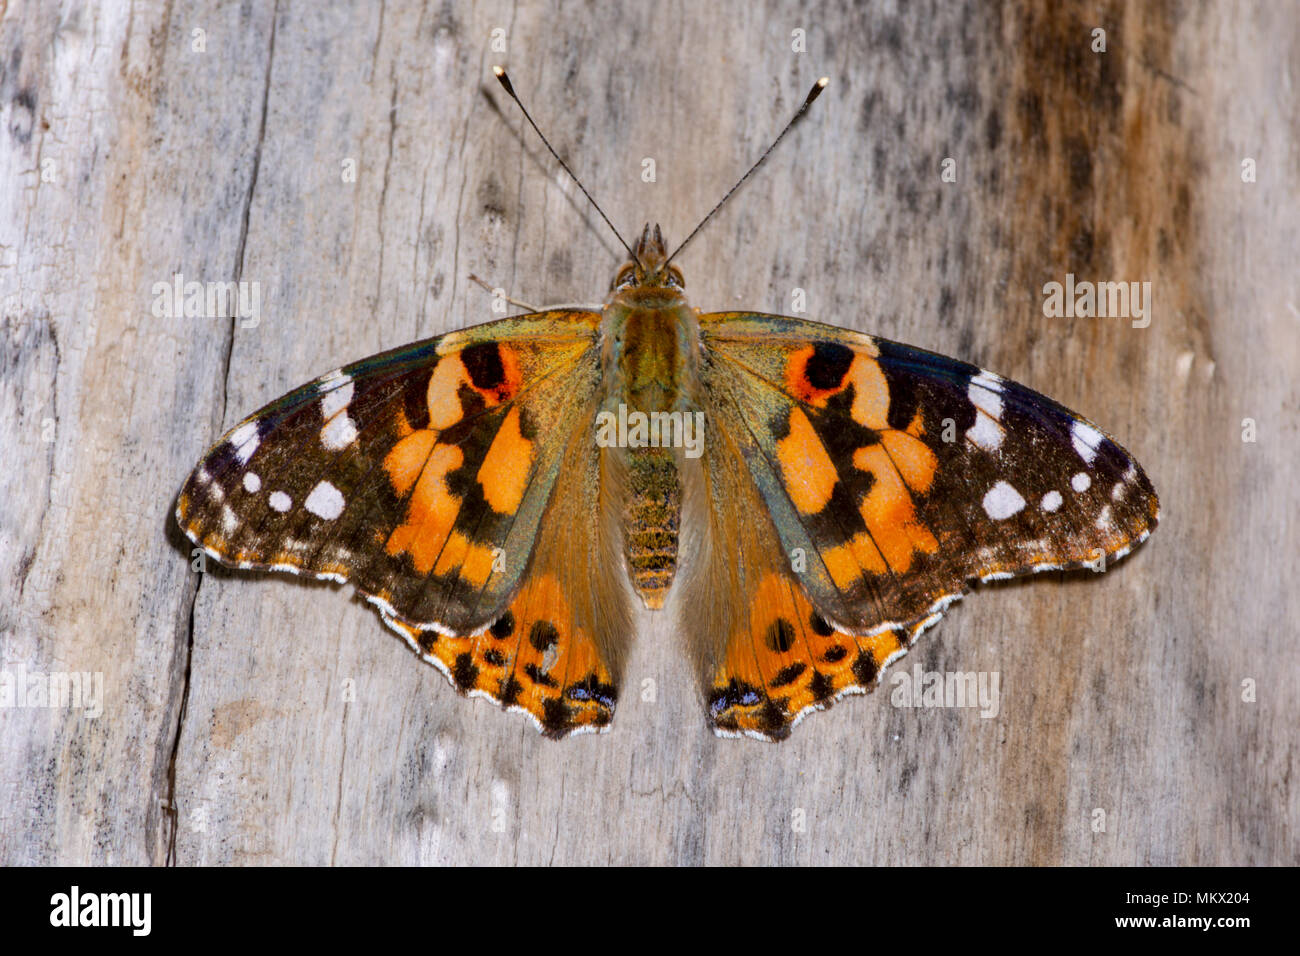 American Painted Lady butterfly, Castle Rock Colorado US - Stock Image